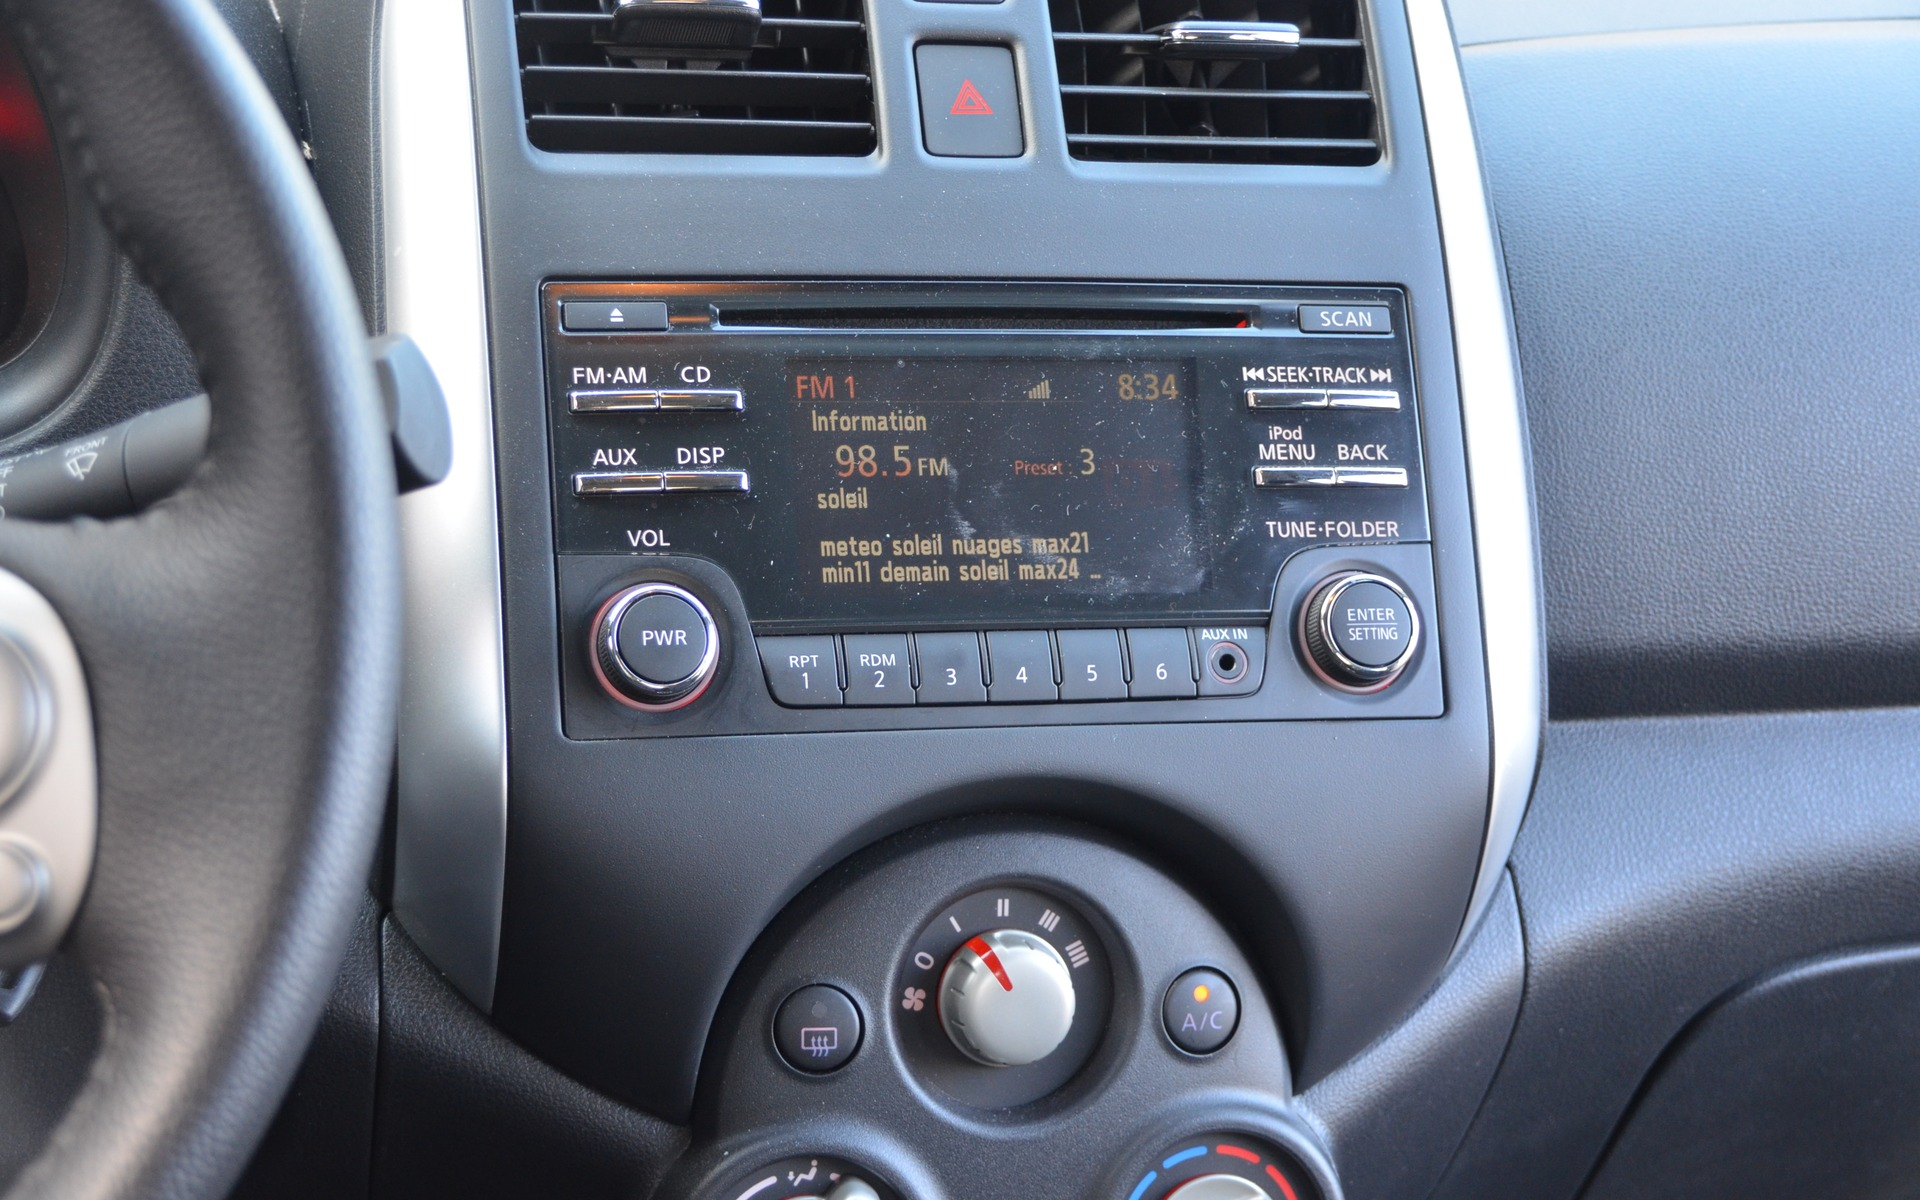 The radio is easy to use but the screen is pretty small.